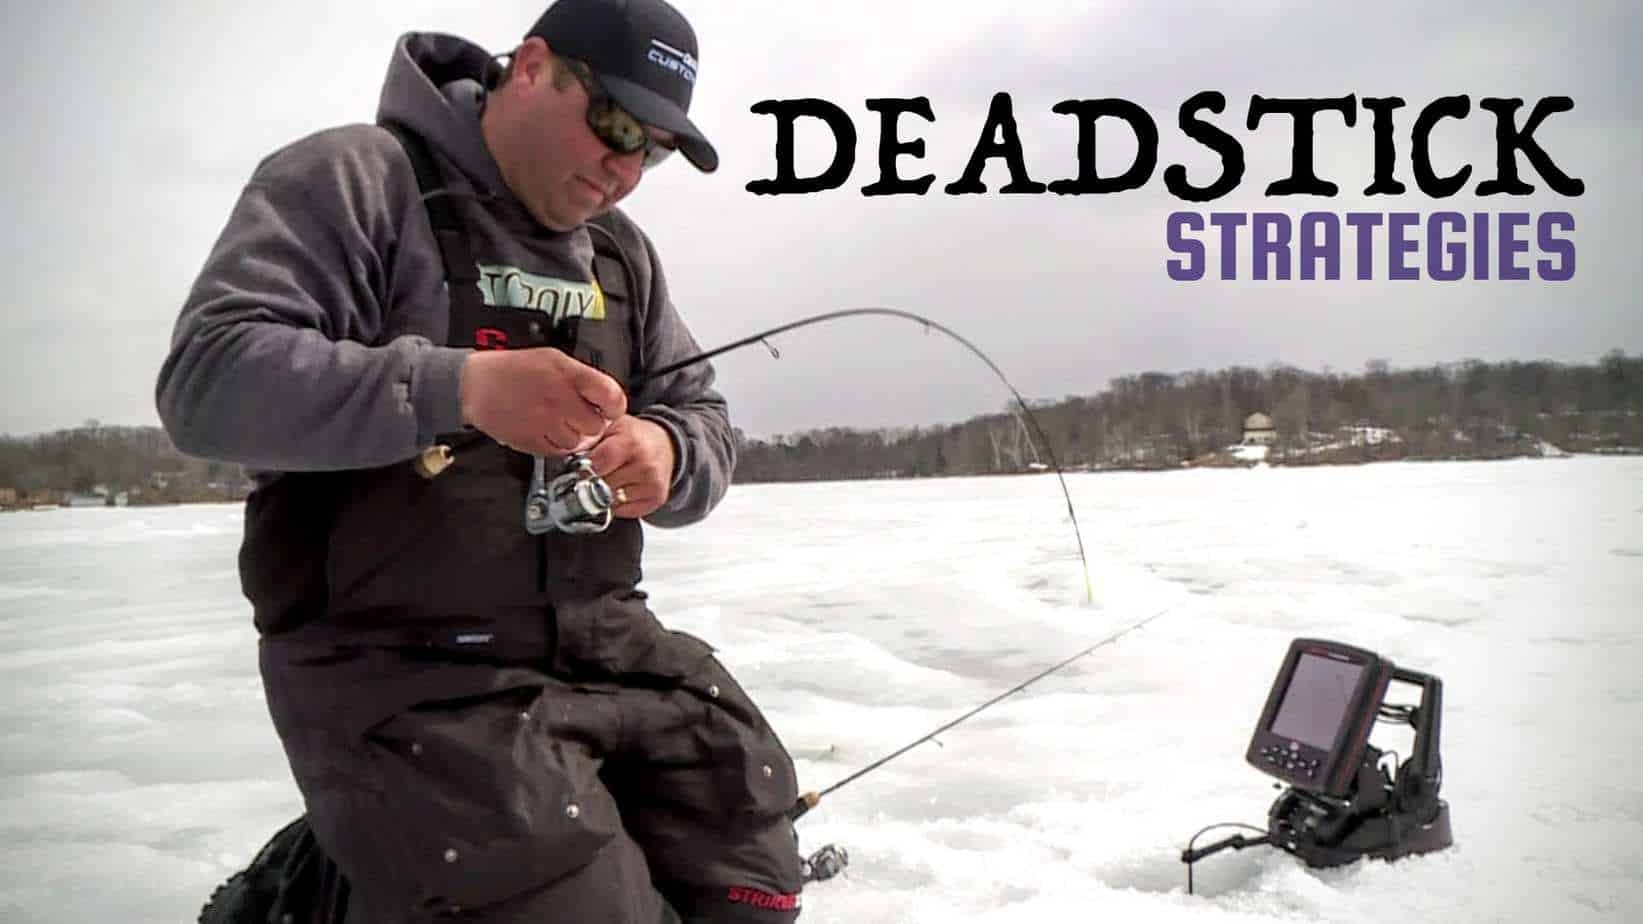 Deadstick ice fishing Tactics with Tony Roach